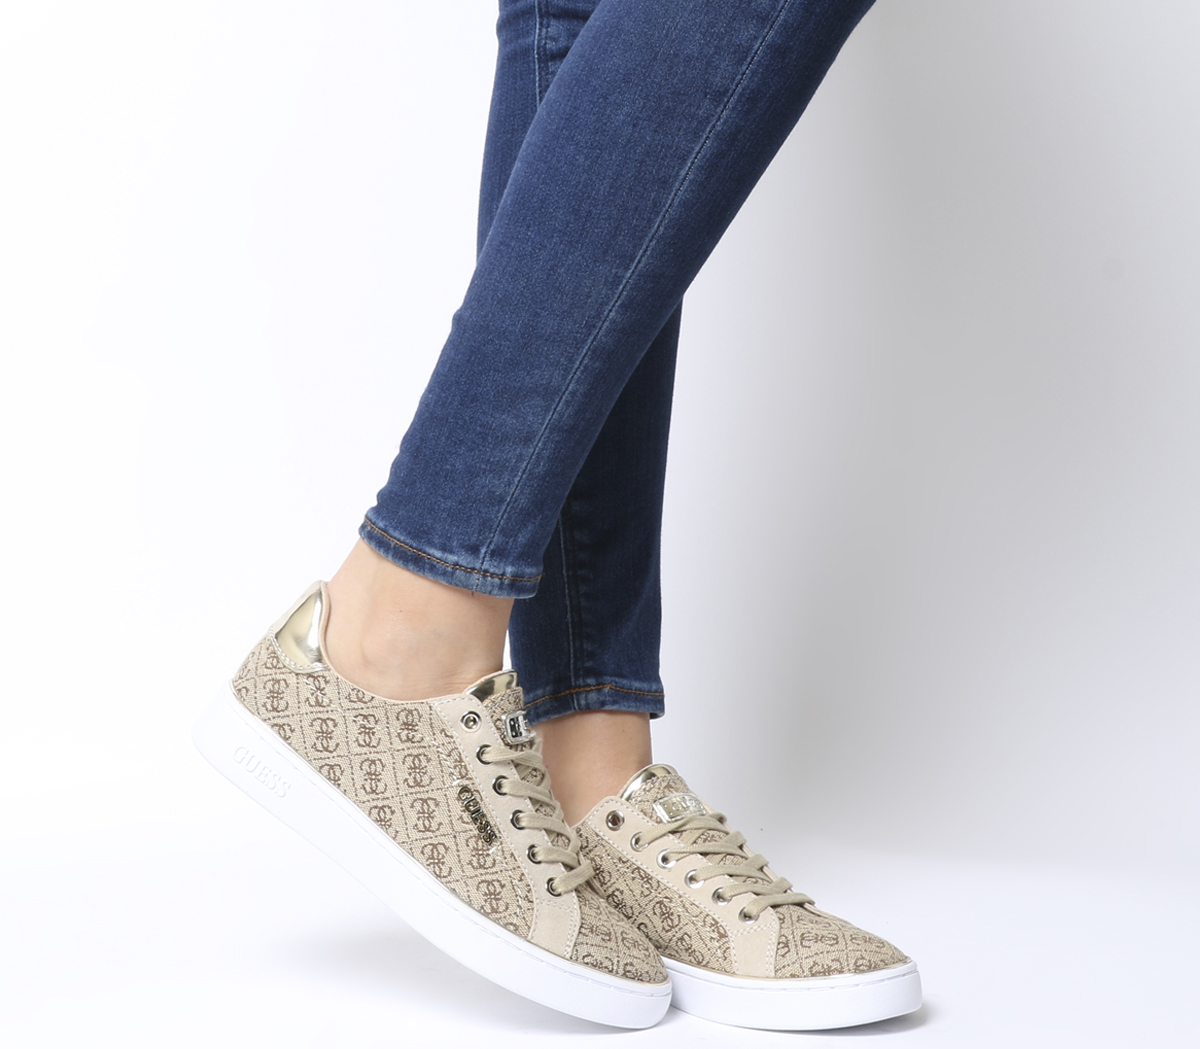 sale retailer 1d0e9 ecac7 Details about Womens Guess Beckie Sneakers Beige Logo Flats